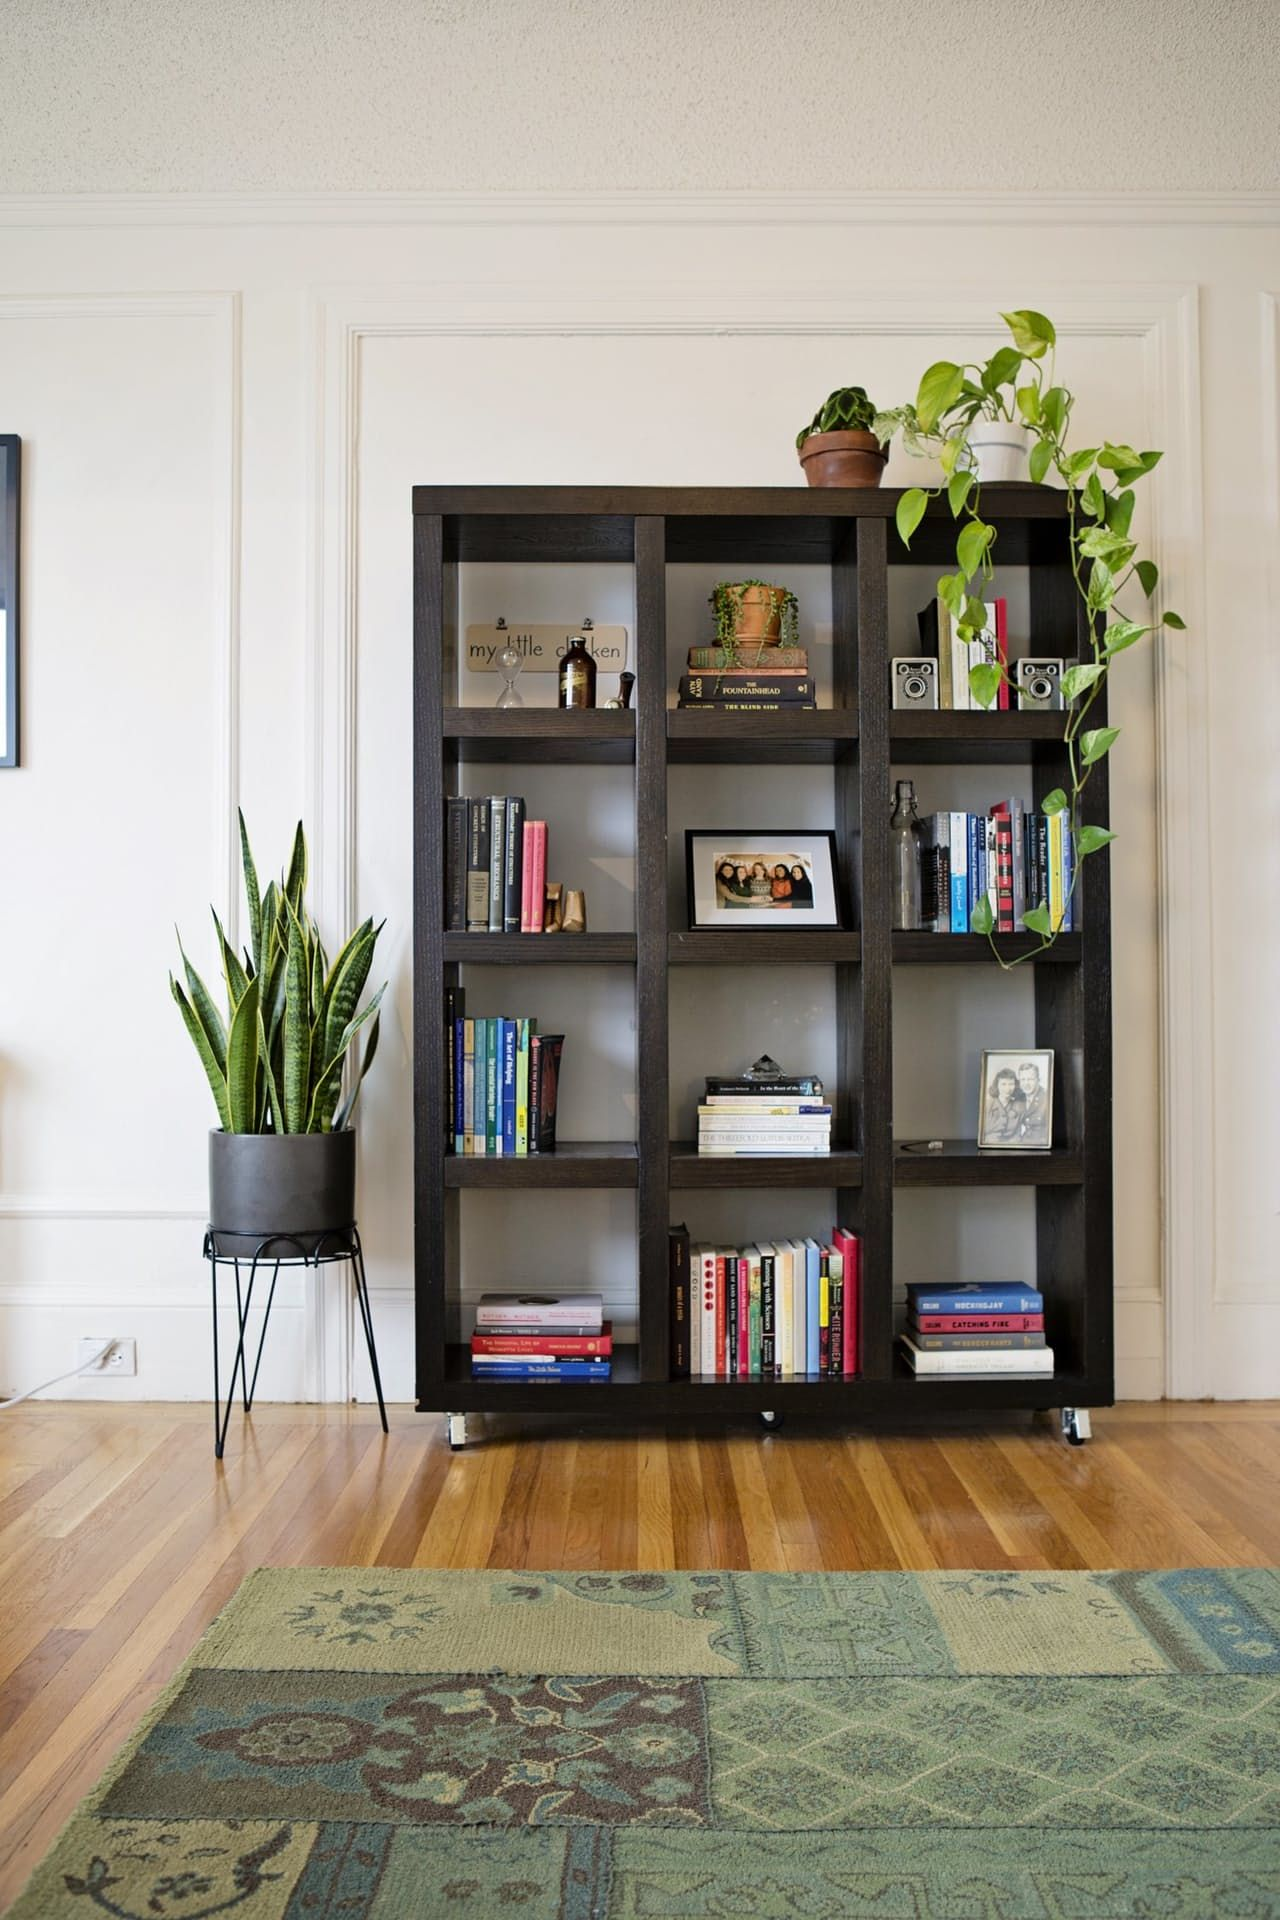 Put Picture Frames On Shelves Alternate How Books Are Displayed